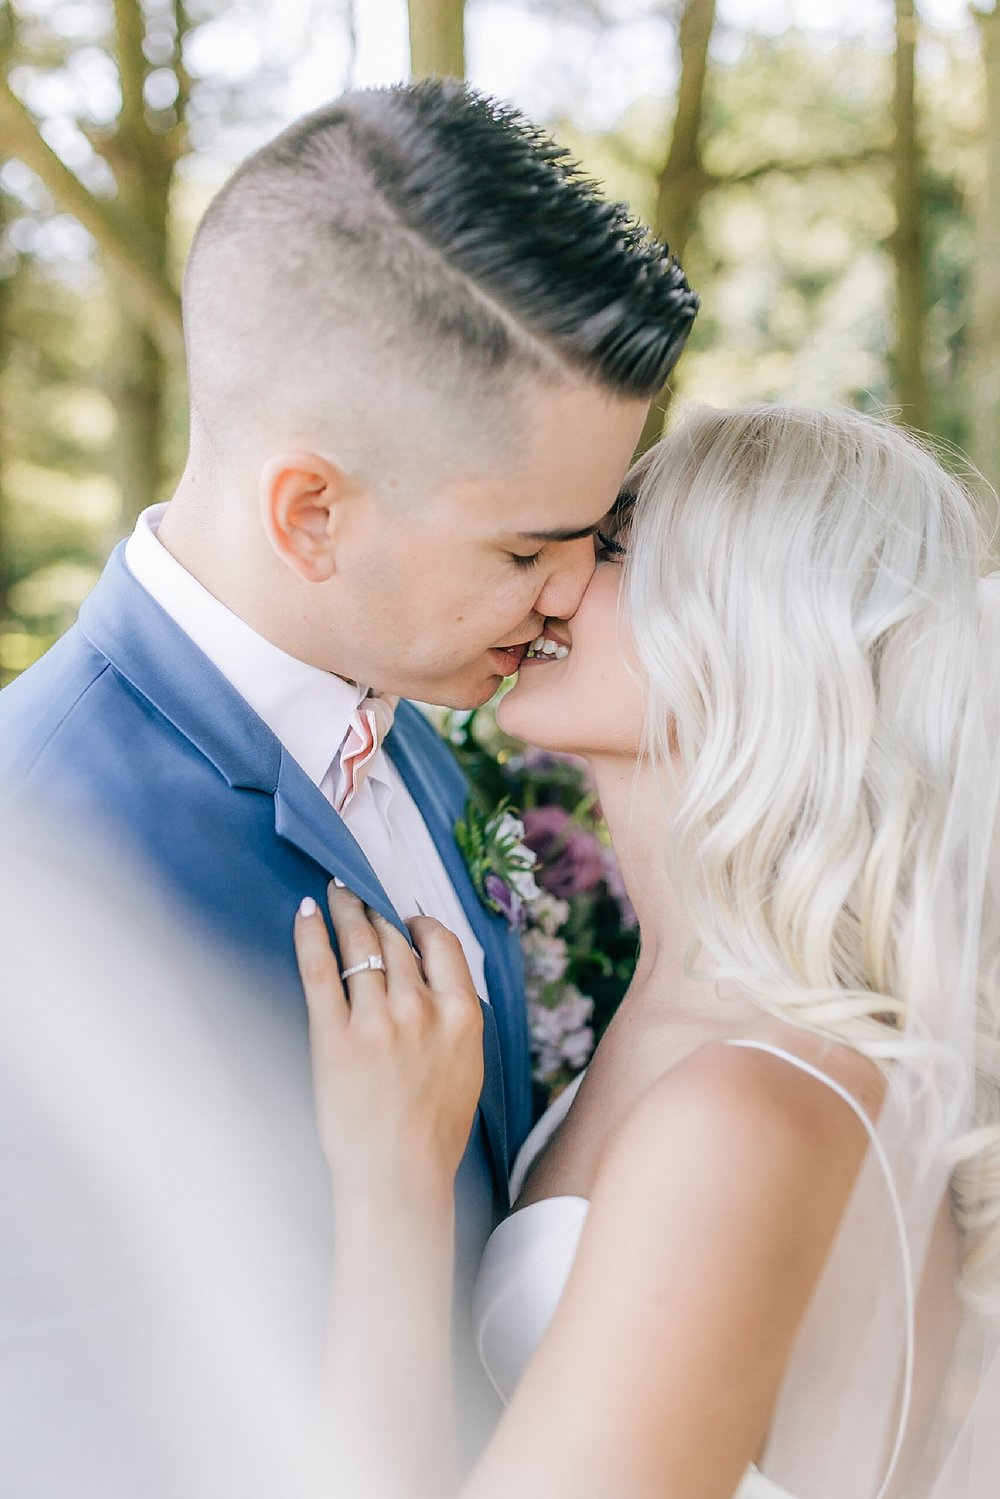 A Unique Outdoor Summer Wedding at Bast Brothers Garden Center by Magdalena Studios_0022.jpg